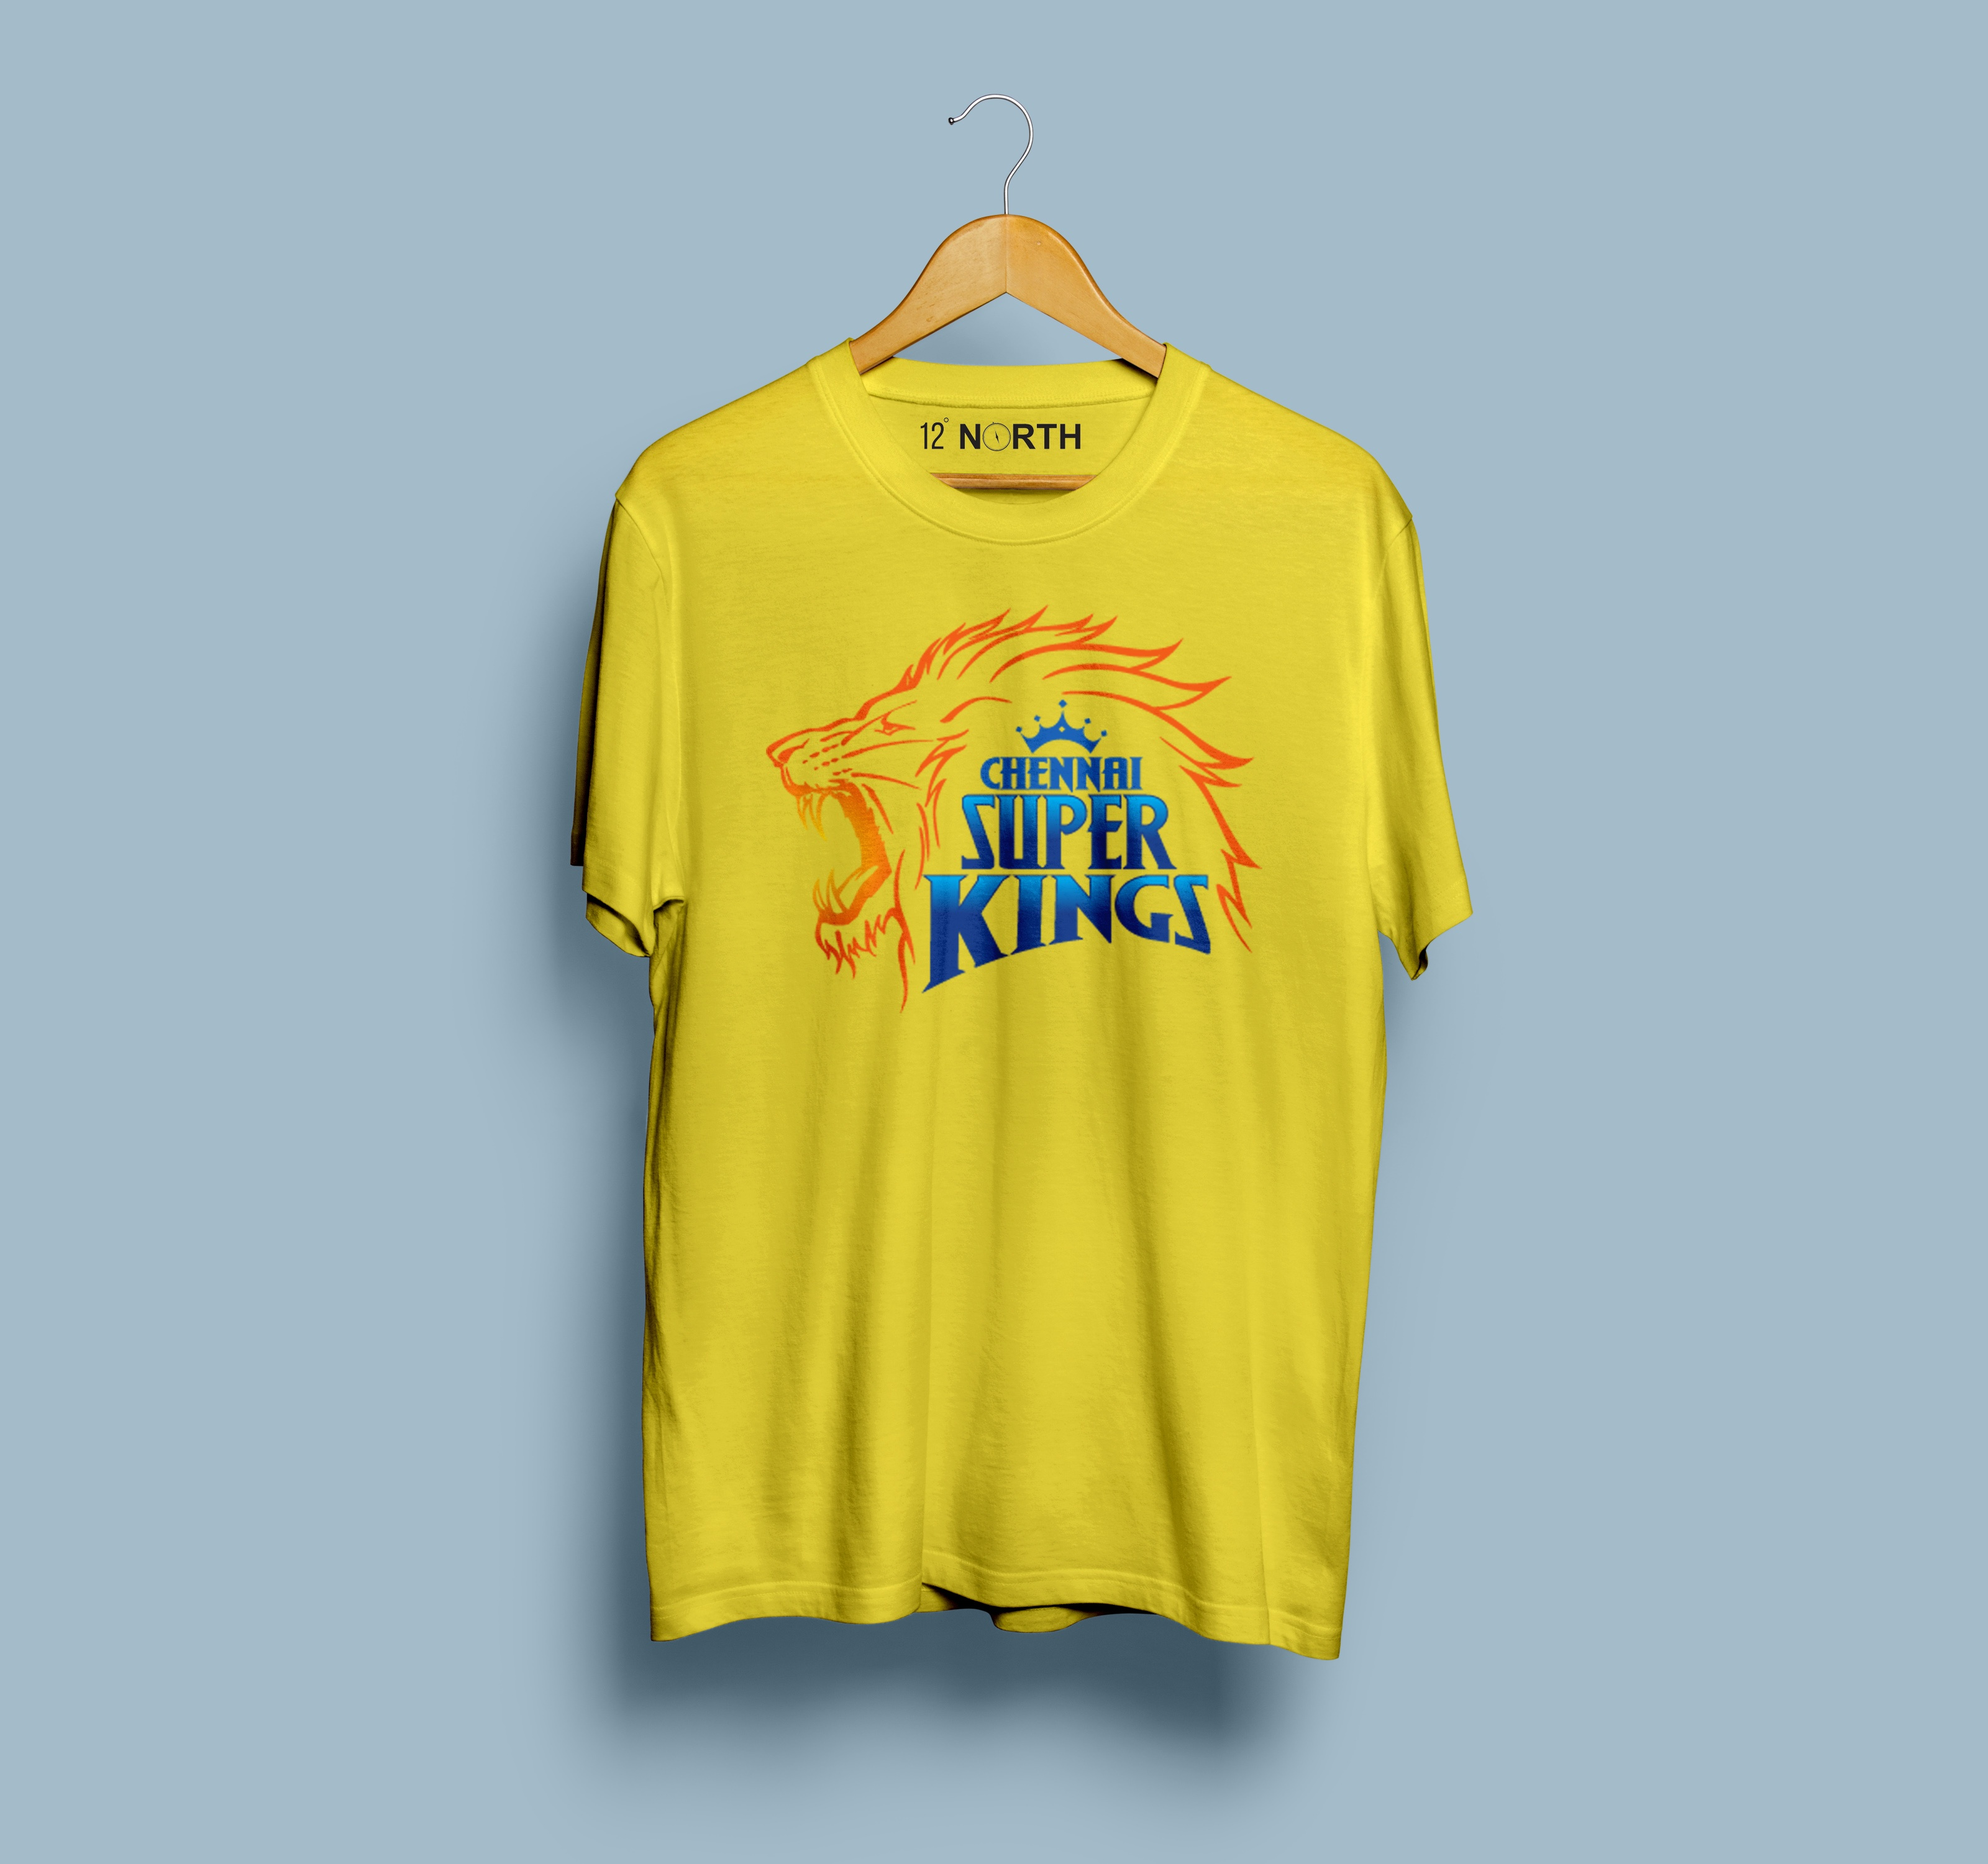 a802cb5f3 Where can I find IPL T-shirts in India? - Quora